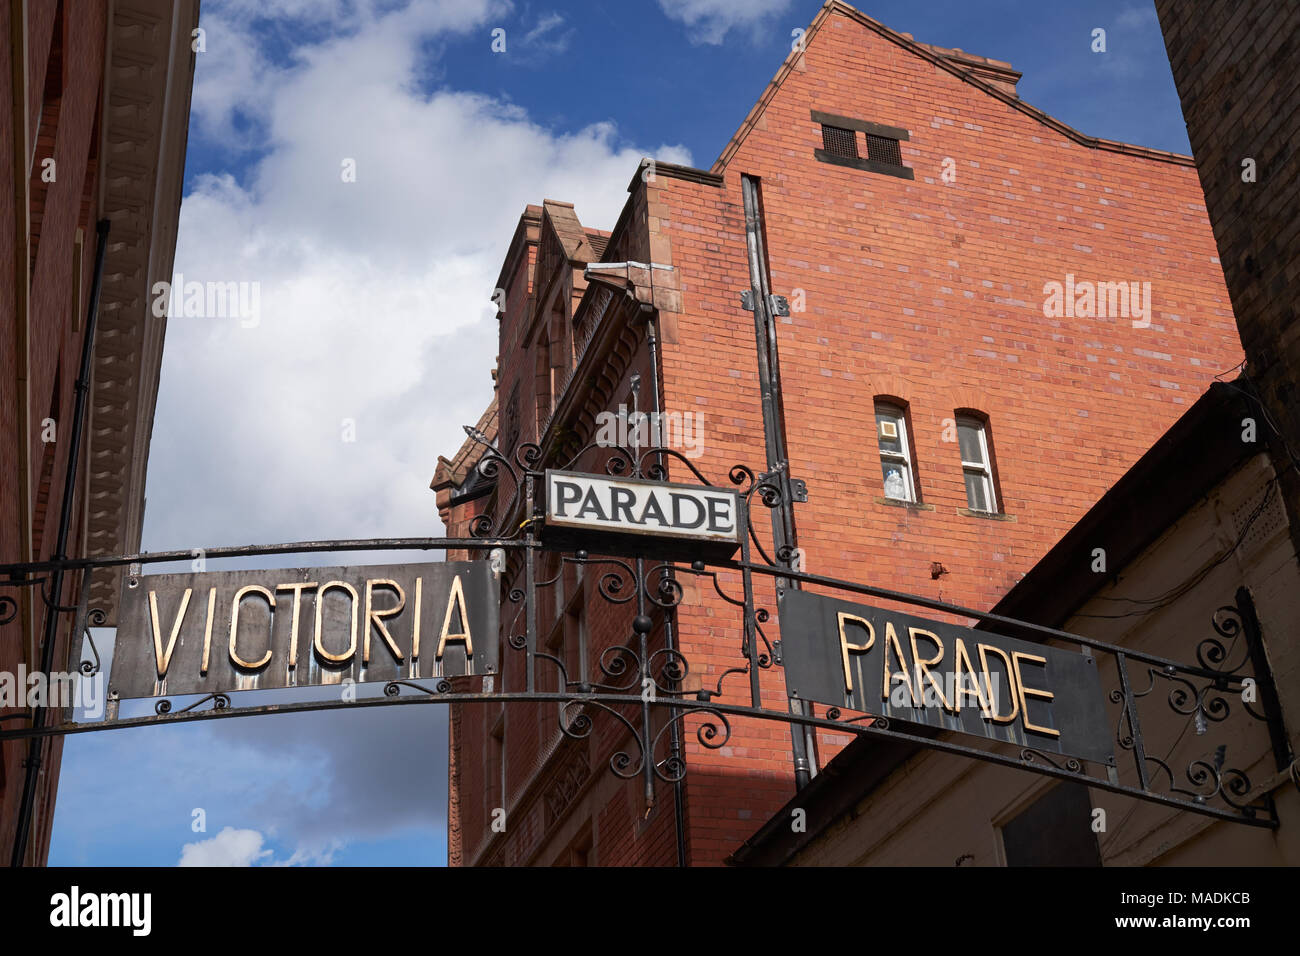 Sign for the Victoria Parade shopping area, Leicester, Leicestershire, UK. - Stock Image